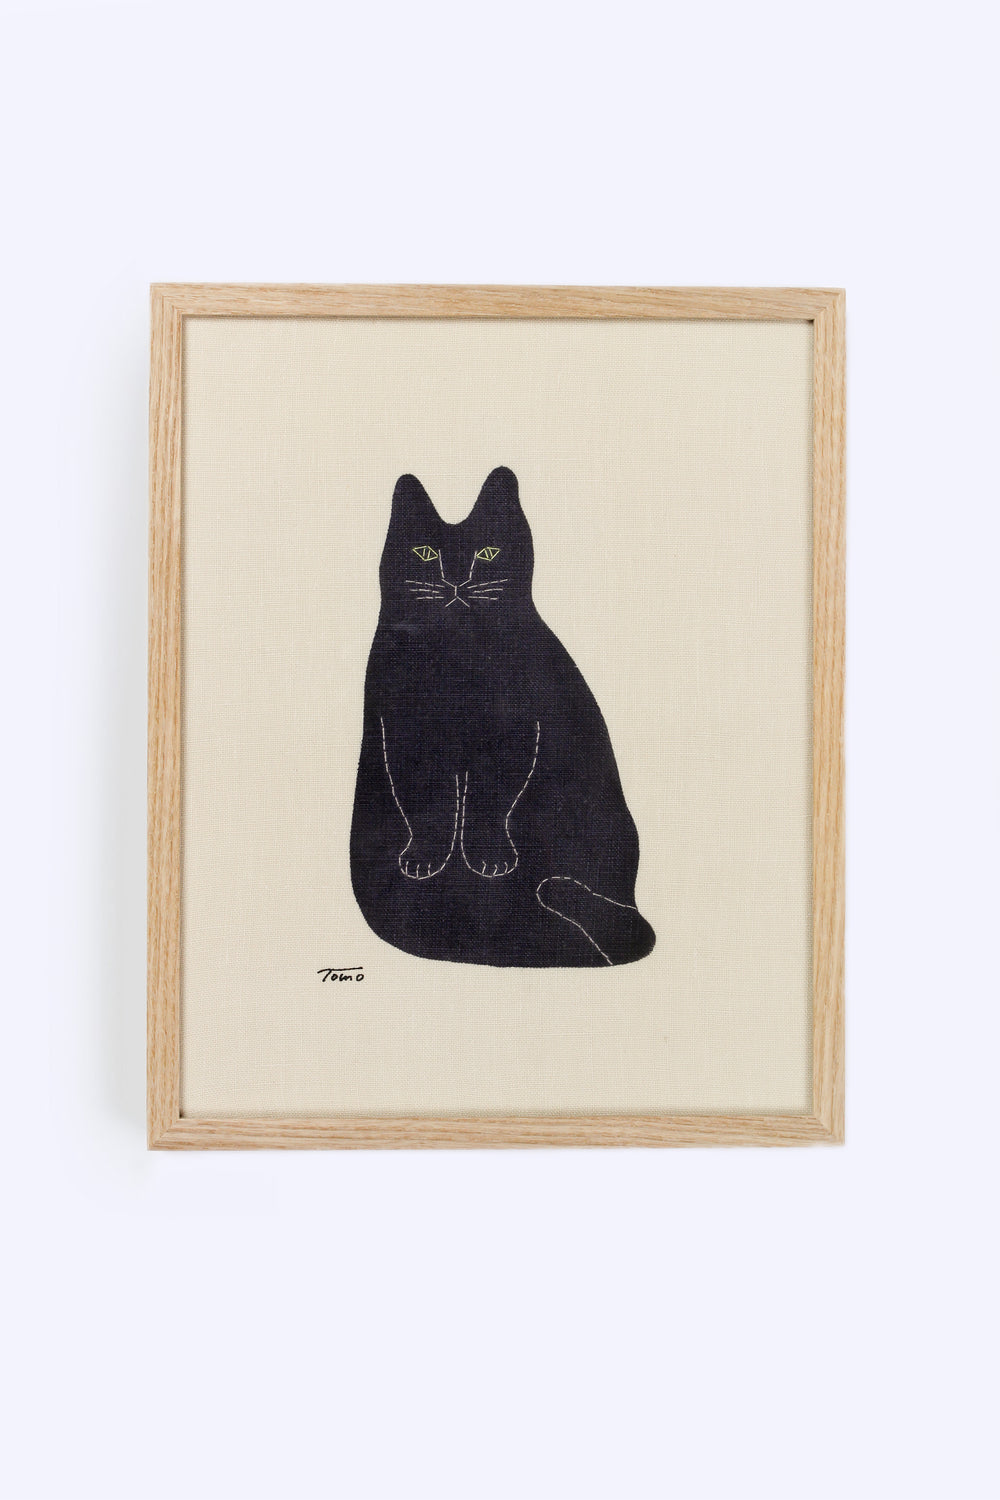 Framed Fabric Black Cat